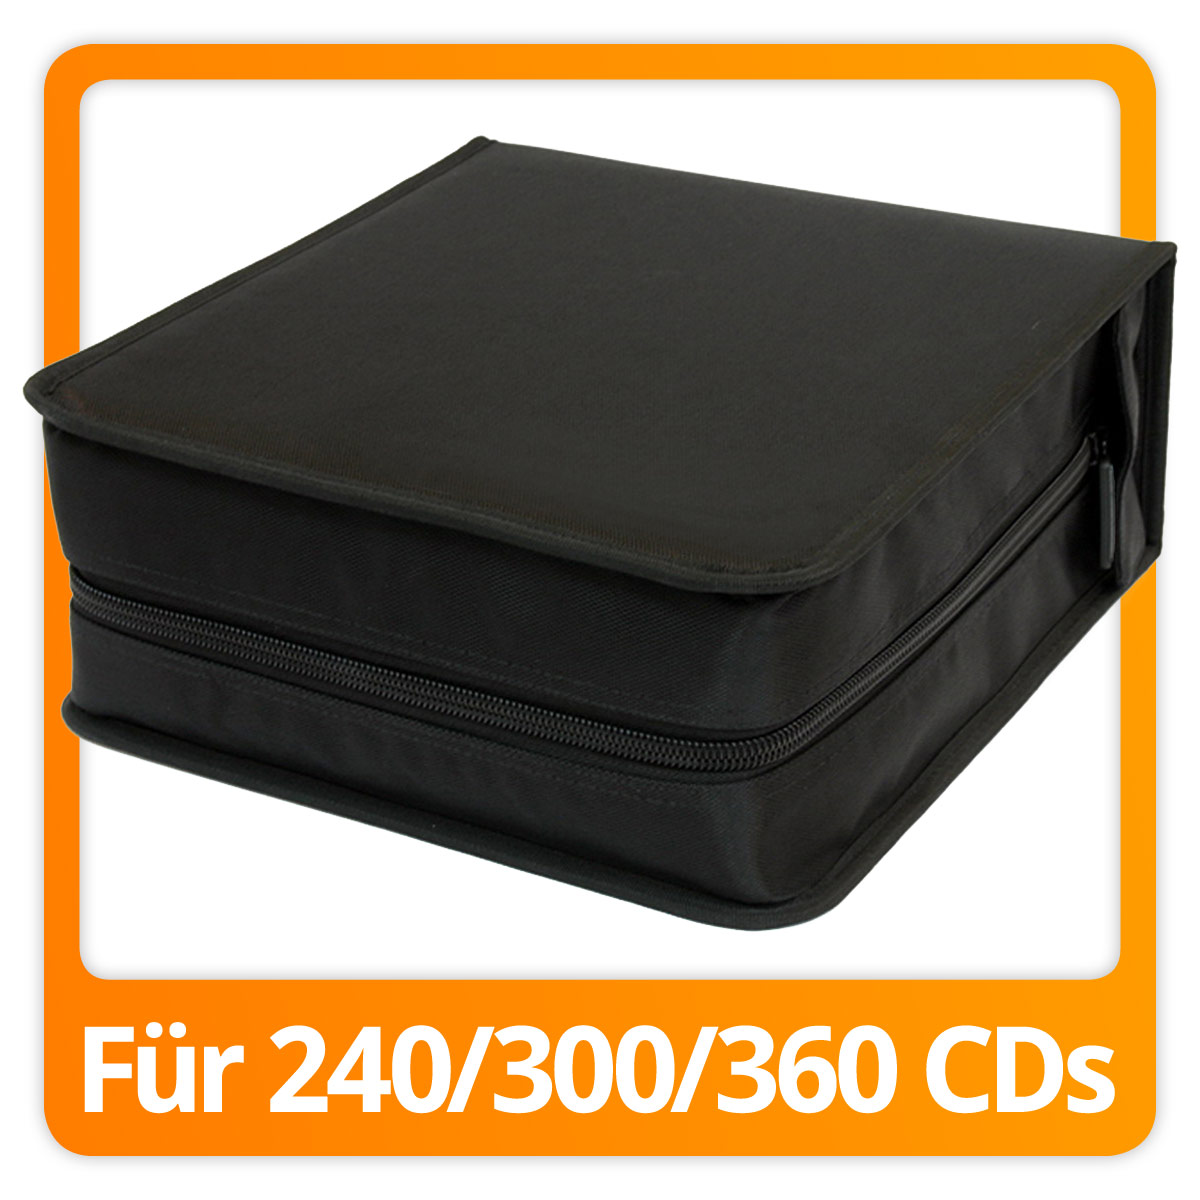 cd dvd mappe wallet aufbewahrung tasche box case f r 120 blueray dvds cds ebay. Black Bedroom Furniture Sets. Home Design Ideas